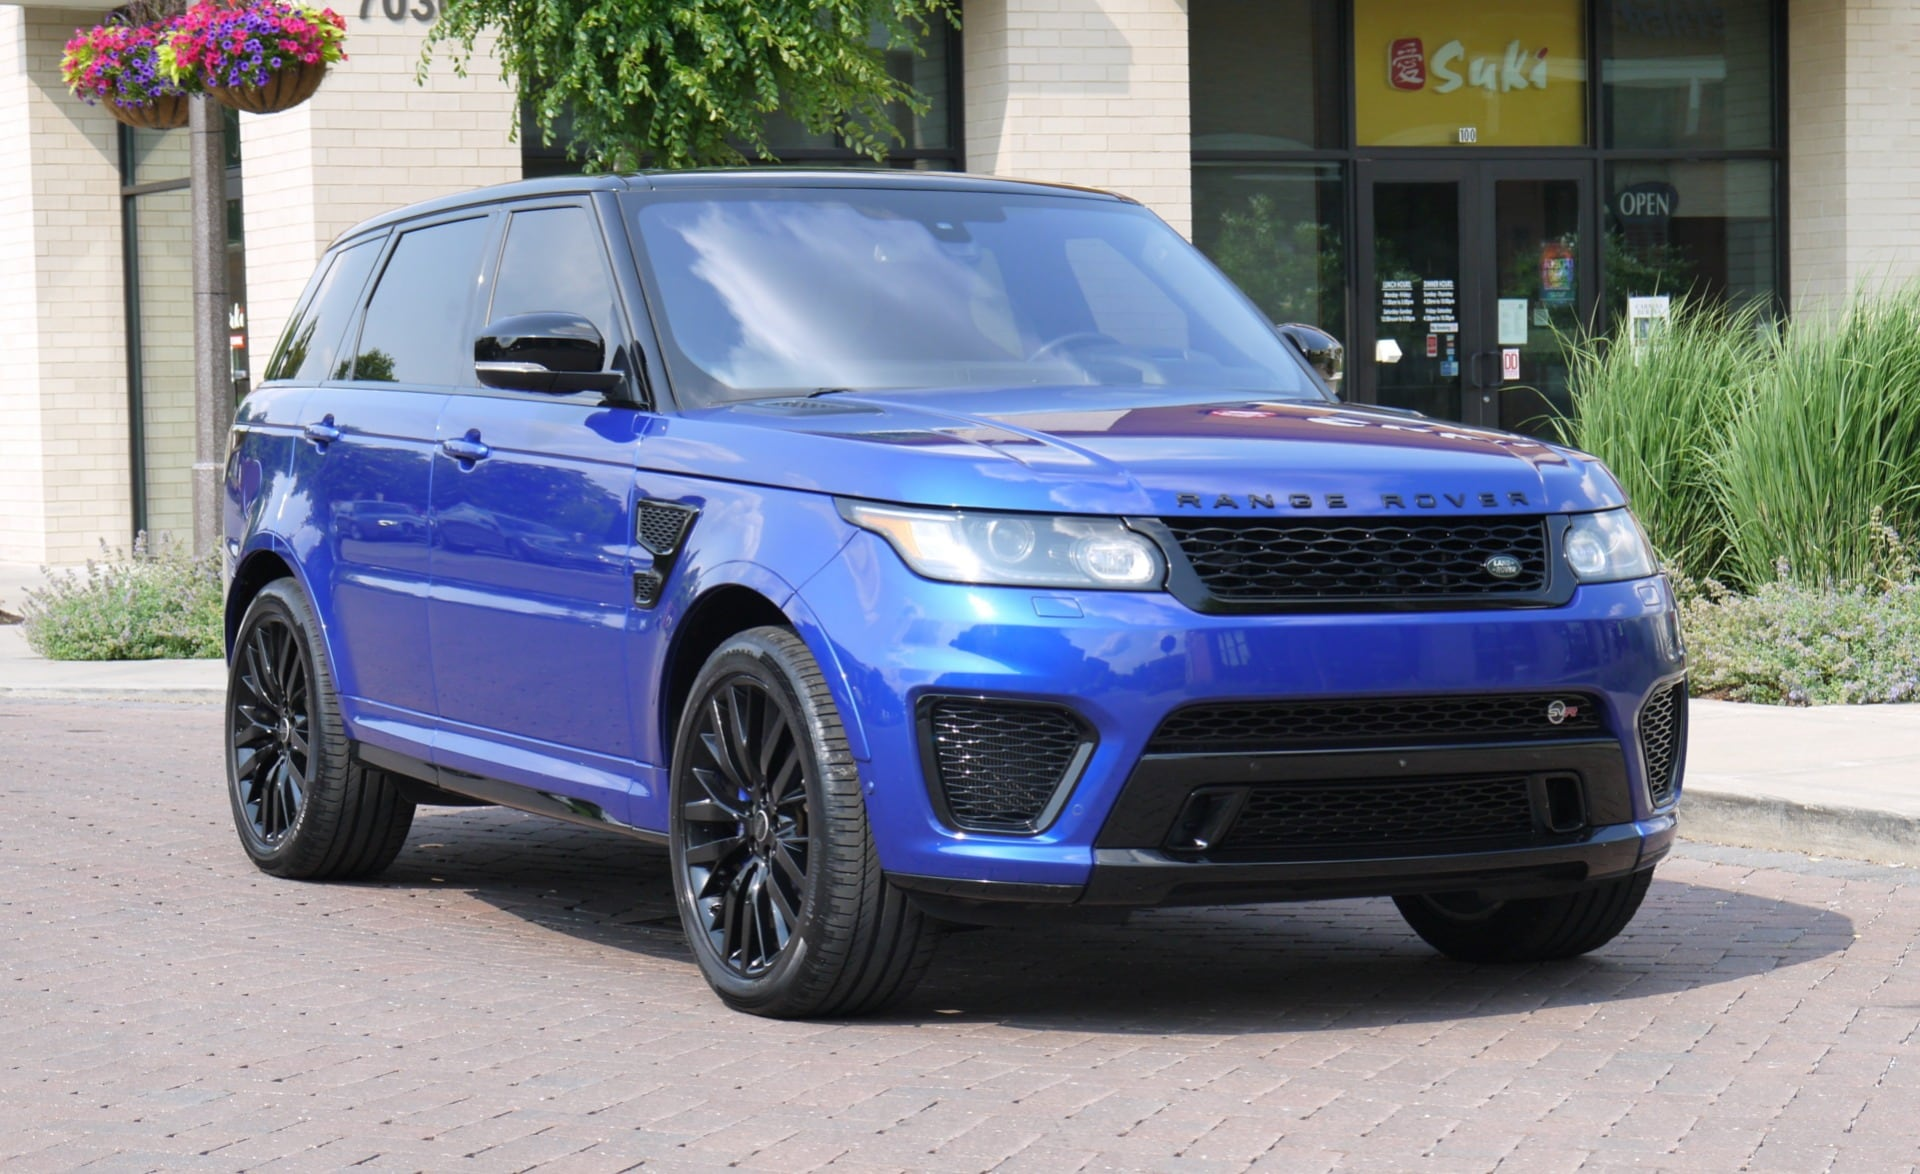 2016 Land Rover Range Rover Sport 5.0L Supercharged SVR SUV